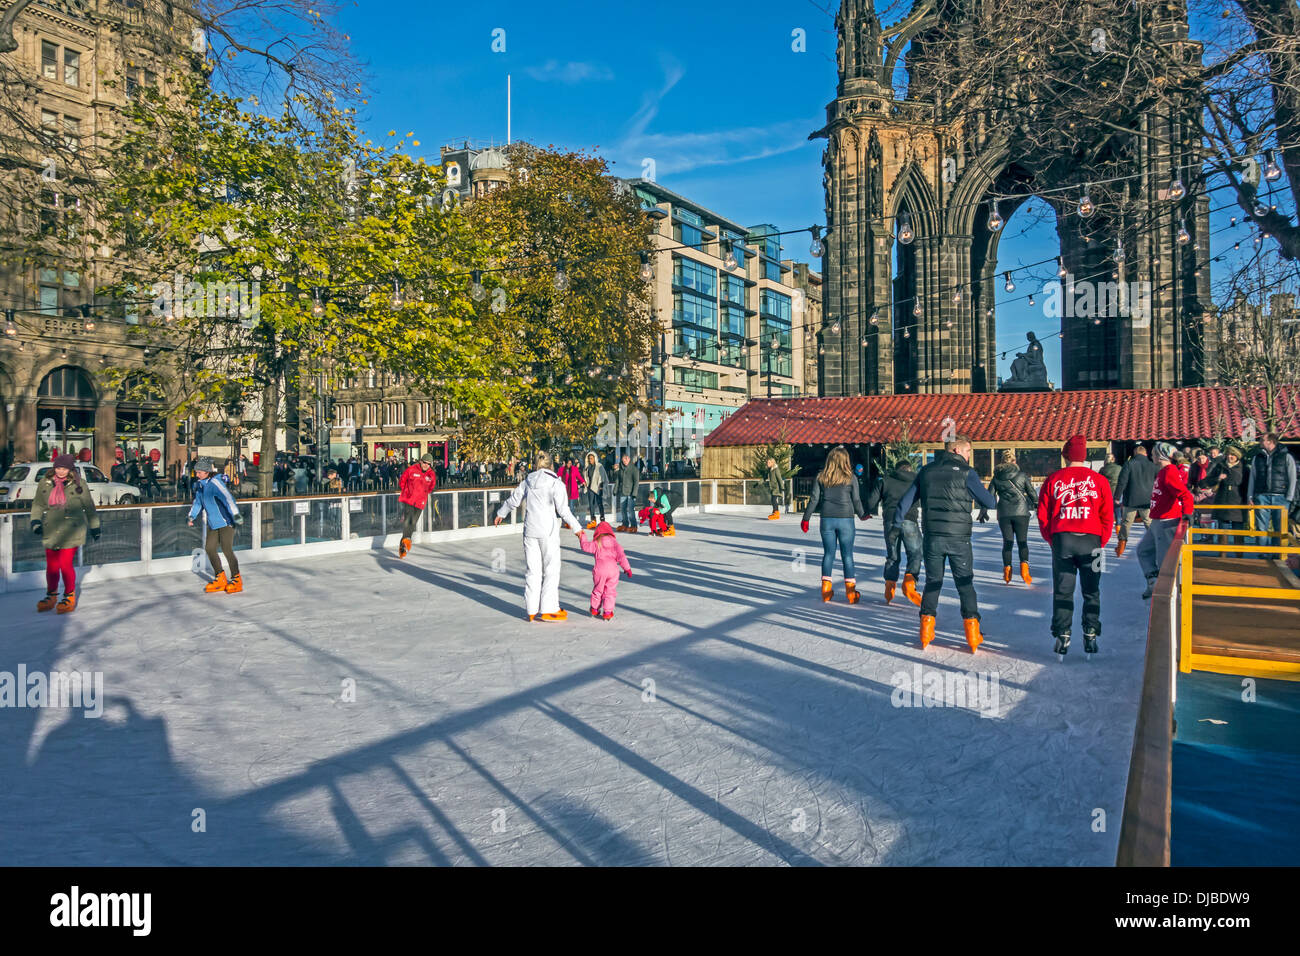 Edinburgh's Christmas in East Princes Street Gardens with ice rink and skaters with Scott Monument behind Stock Photo